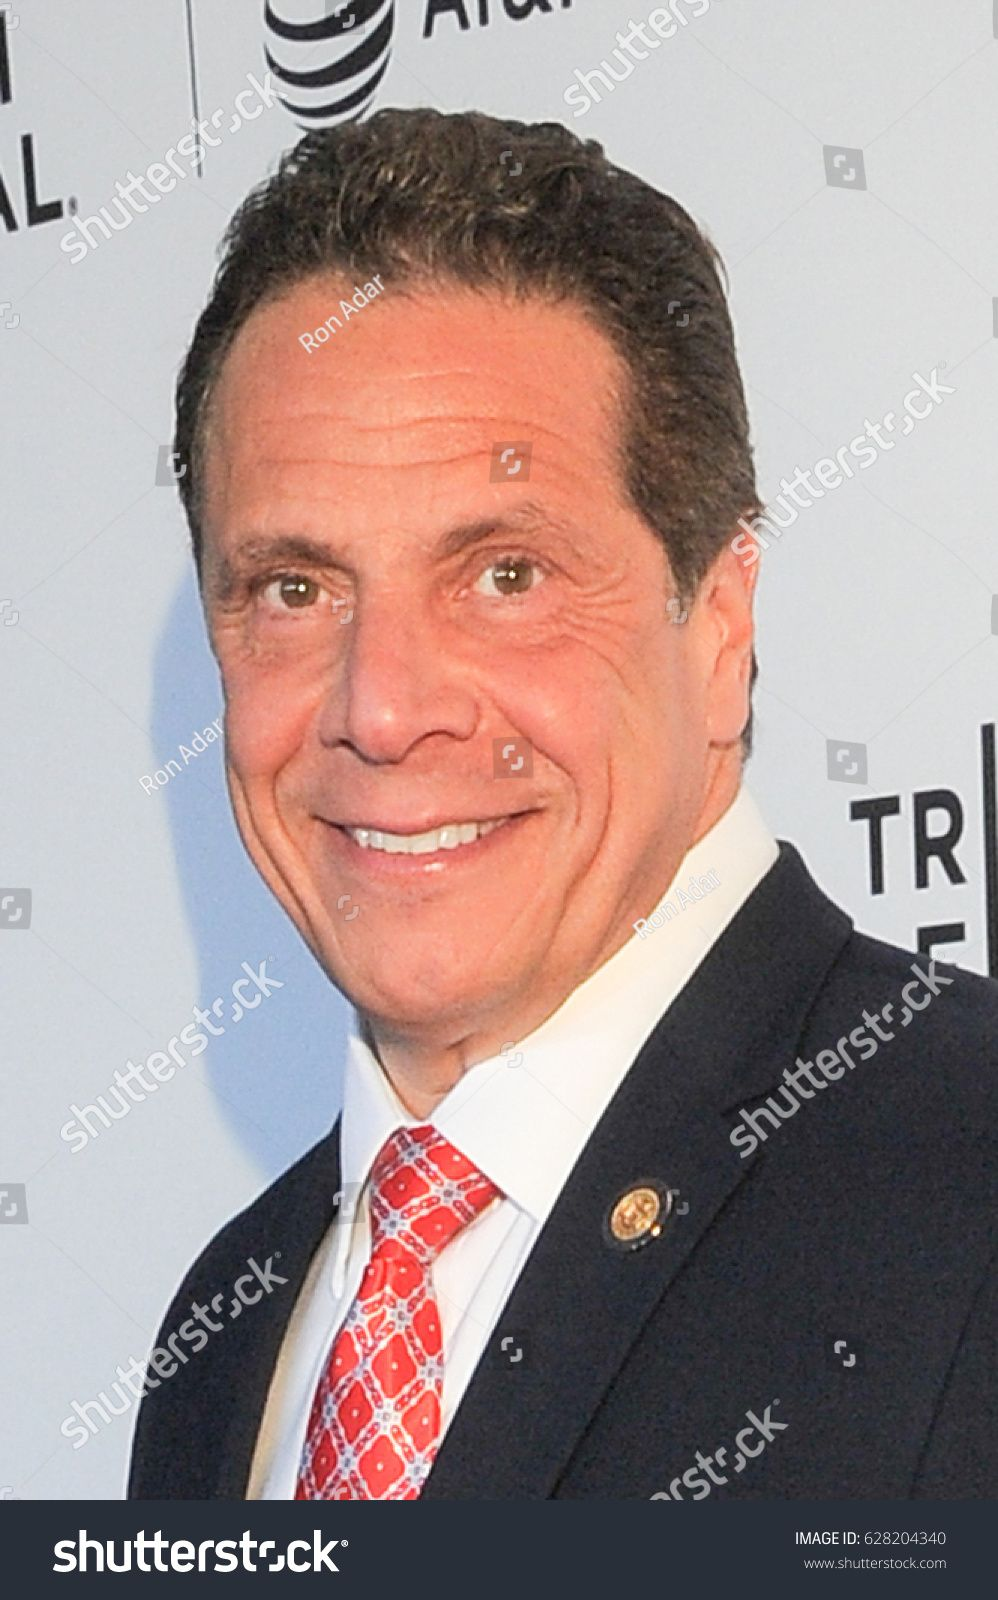 New York Ny April 19 Governor Of New York Andrew Cuomo Attends The Clive Davis The Soundtrack Of Our L Ad Sponsored Cuomo Andrew Attends Davis In 2020